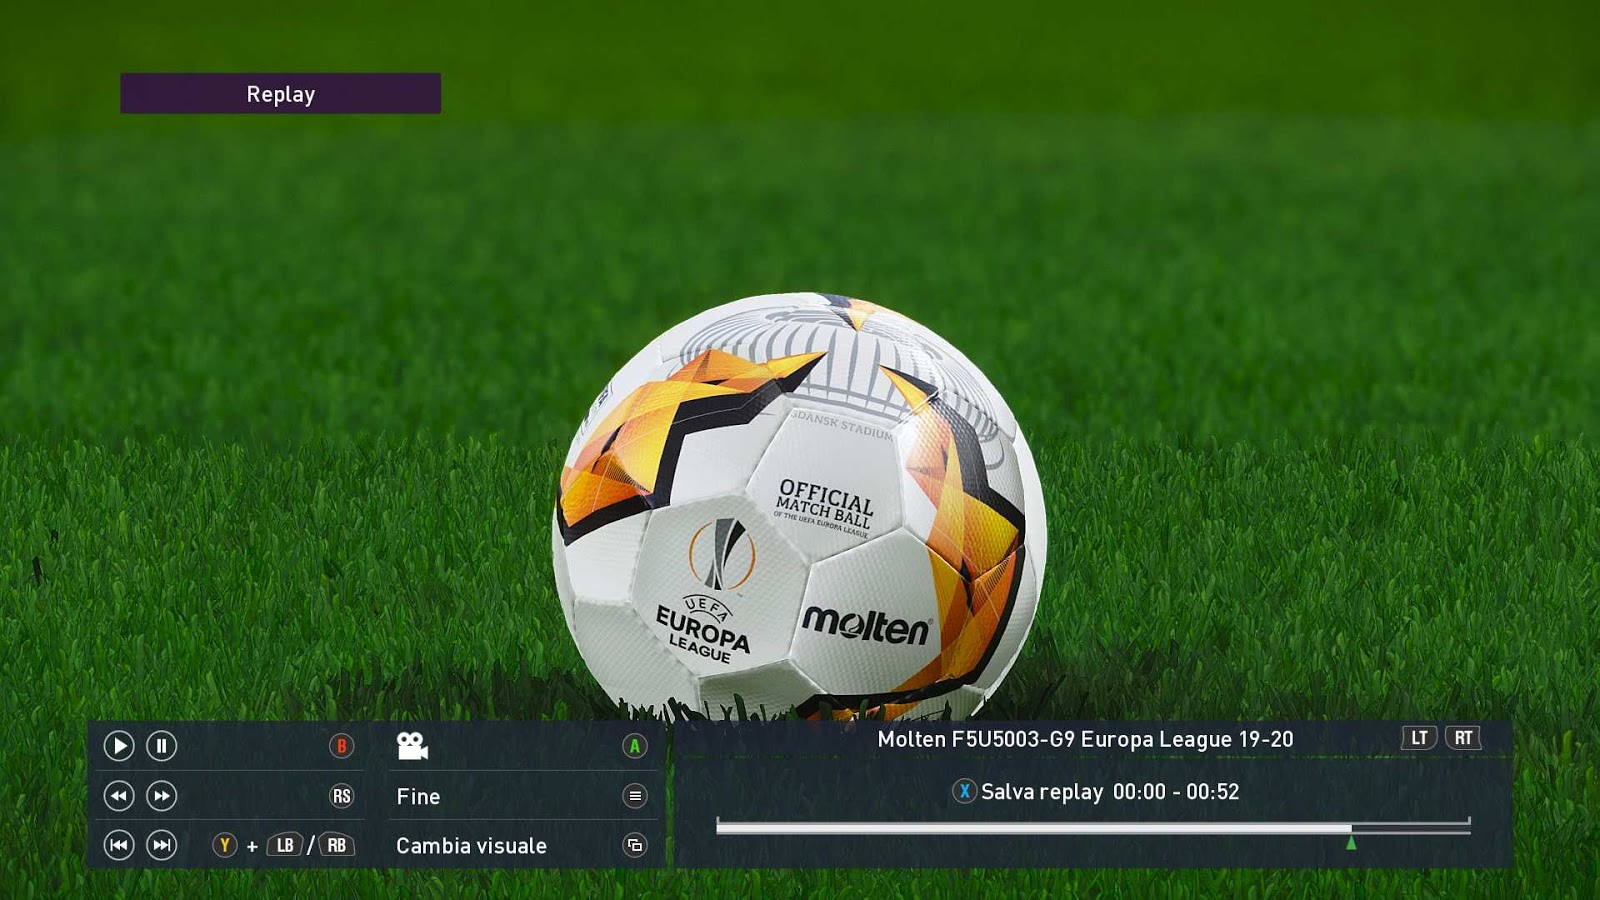 The Best Europa League 2020 Ball